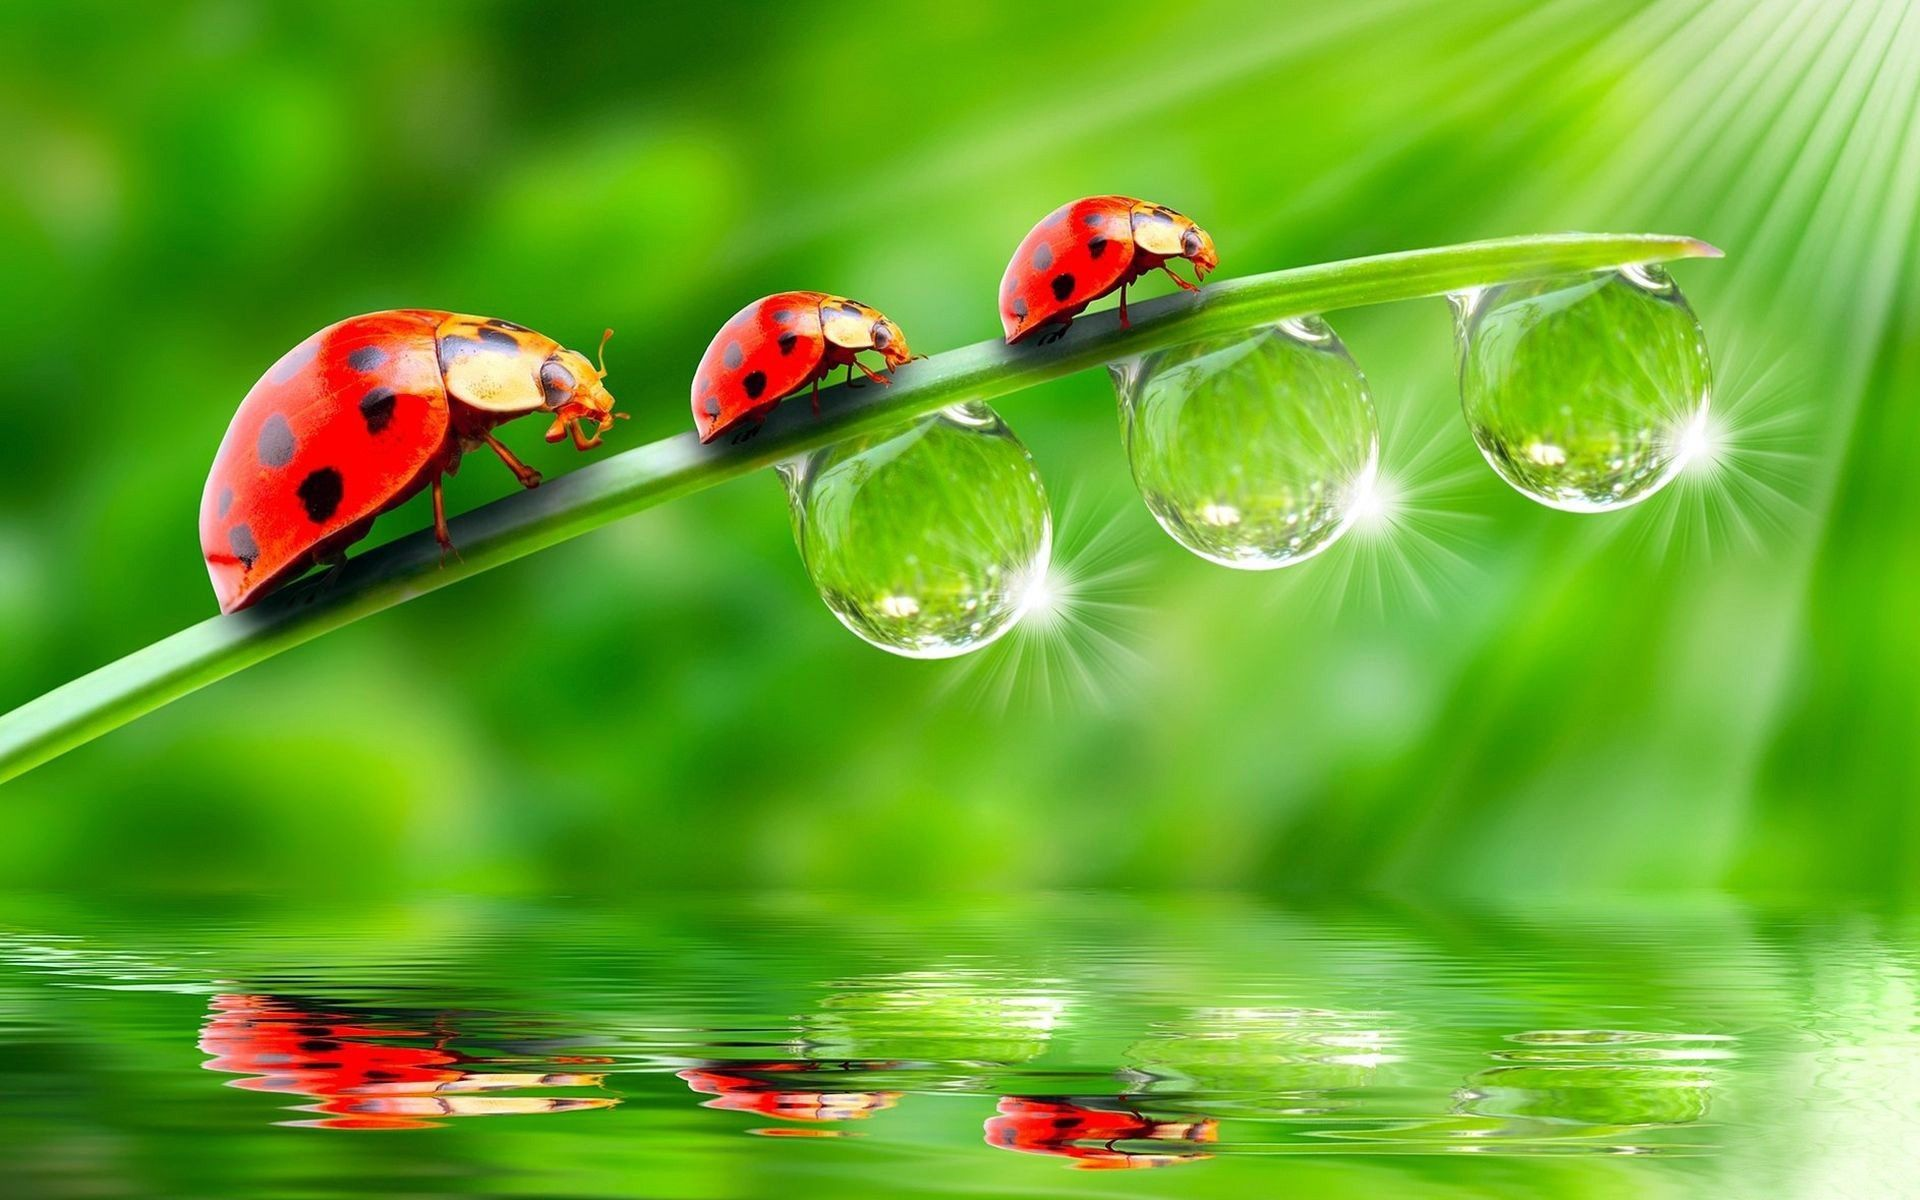 HD Wallpapers Of Water Drops